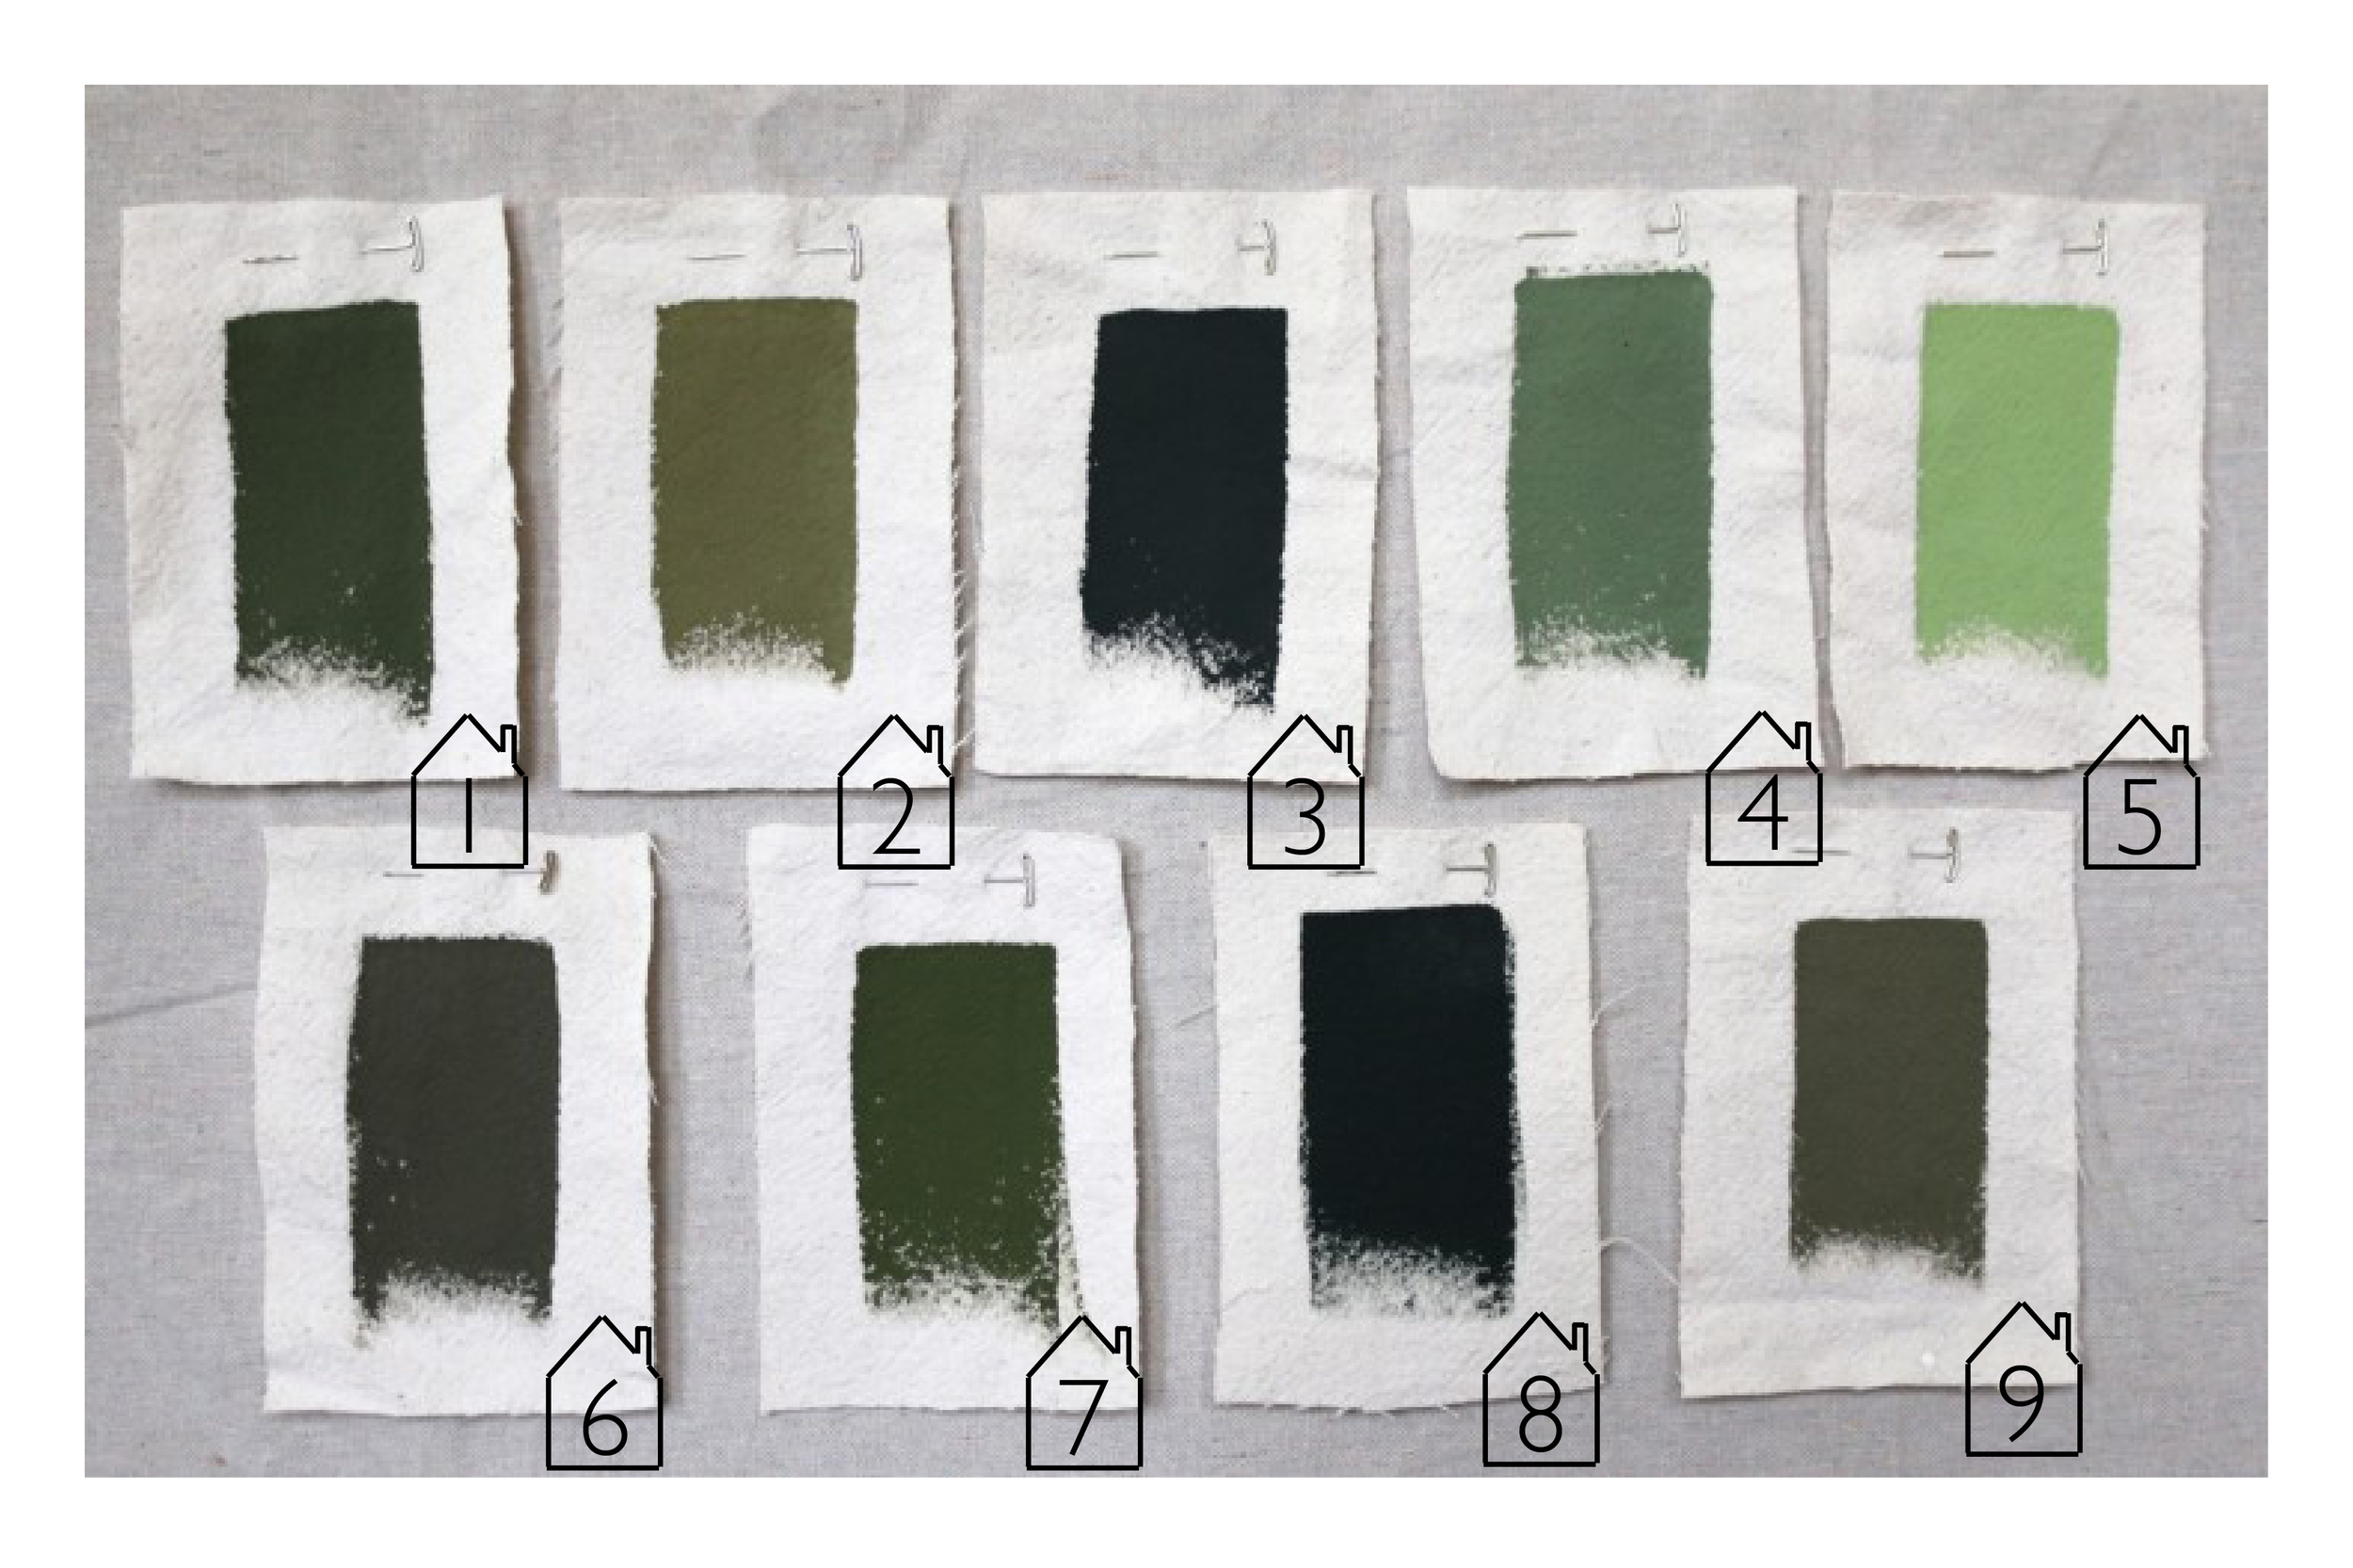 REMODELISTA: Seeing Green - Architects Pick the Best Green Exterior Paints   1. Pratt & Lambert - Olive Shadow  2. Cabot Solid Stain - Sagebrush  3. Farrow & Ball - Studio Green  4. Benjamin Moore - Cedar Path  5. Benjamin Moore - Central Park  6. Benjamin Moore - Mohegan Sage  7. Sherwin-Williams - Yew Hedge  8. Benjamin Moore - Black Forest Green  9. C2 Paints - Toadstool